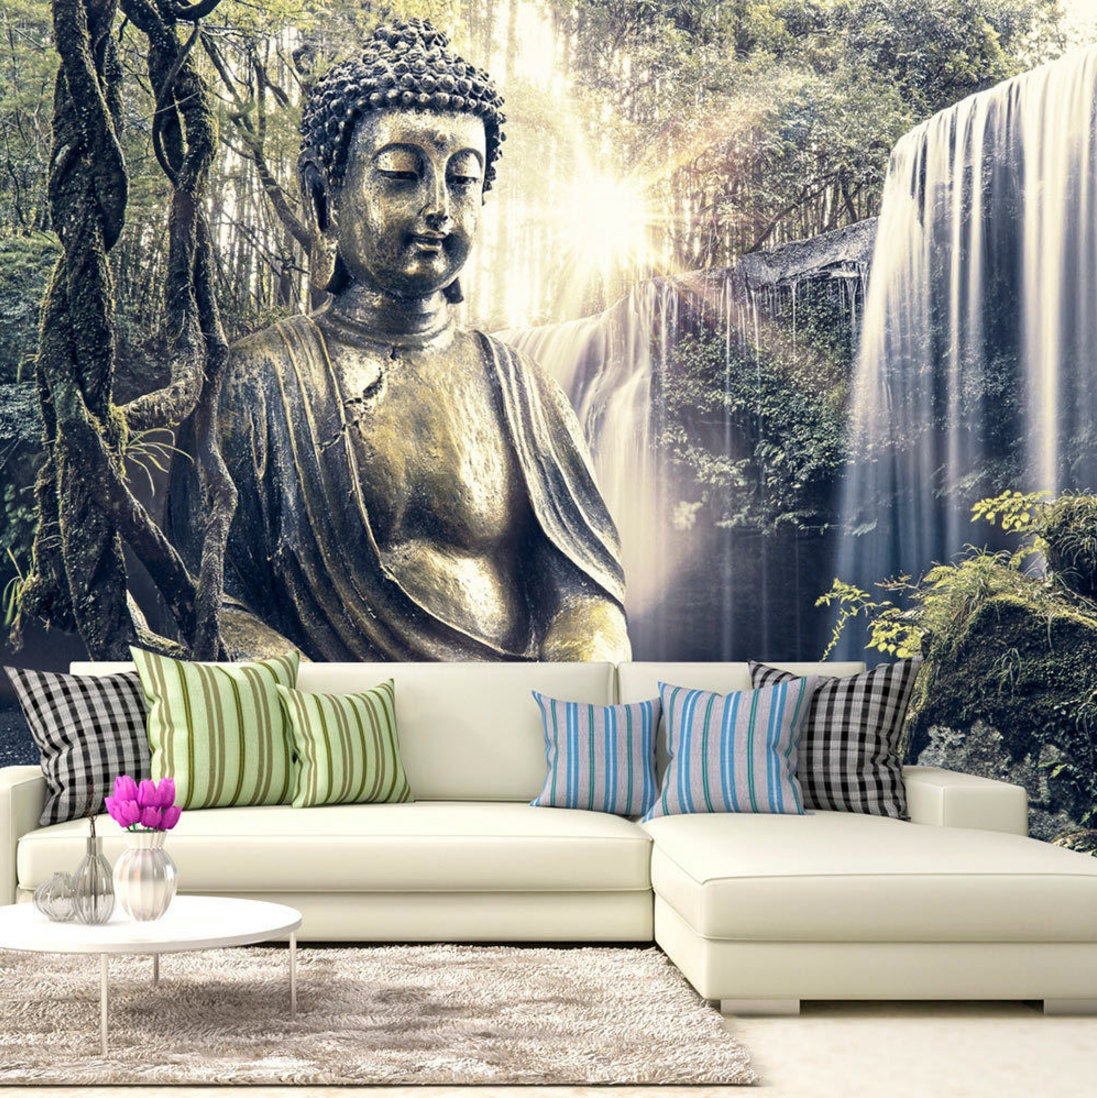 Photo wallpaper wall murals non woven 3d modern art buddha for Buddha decorations for the home uk